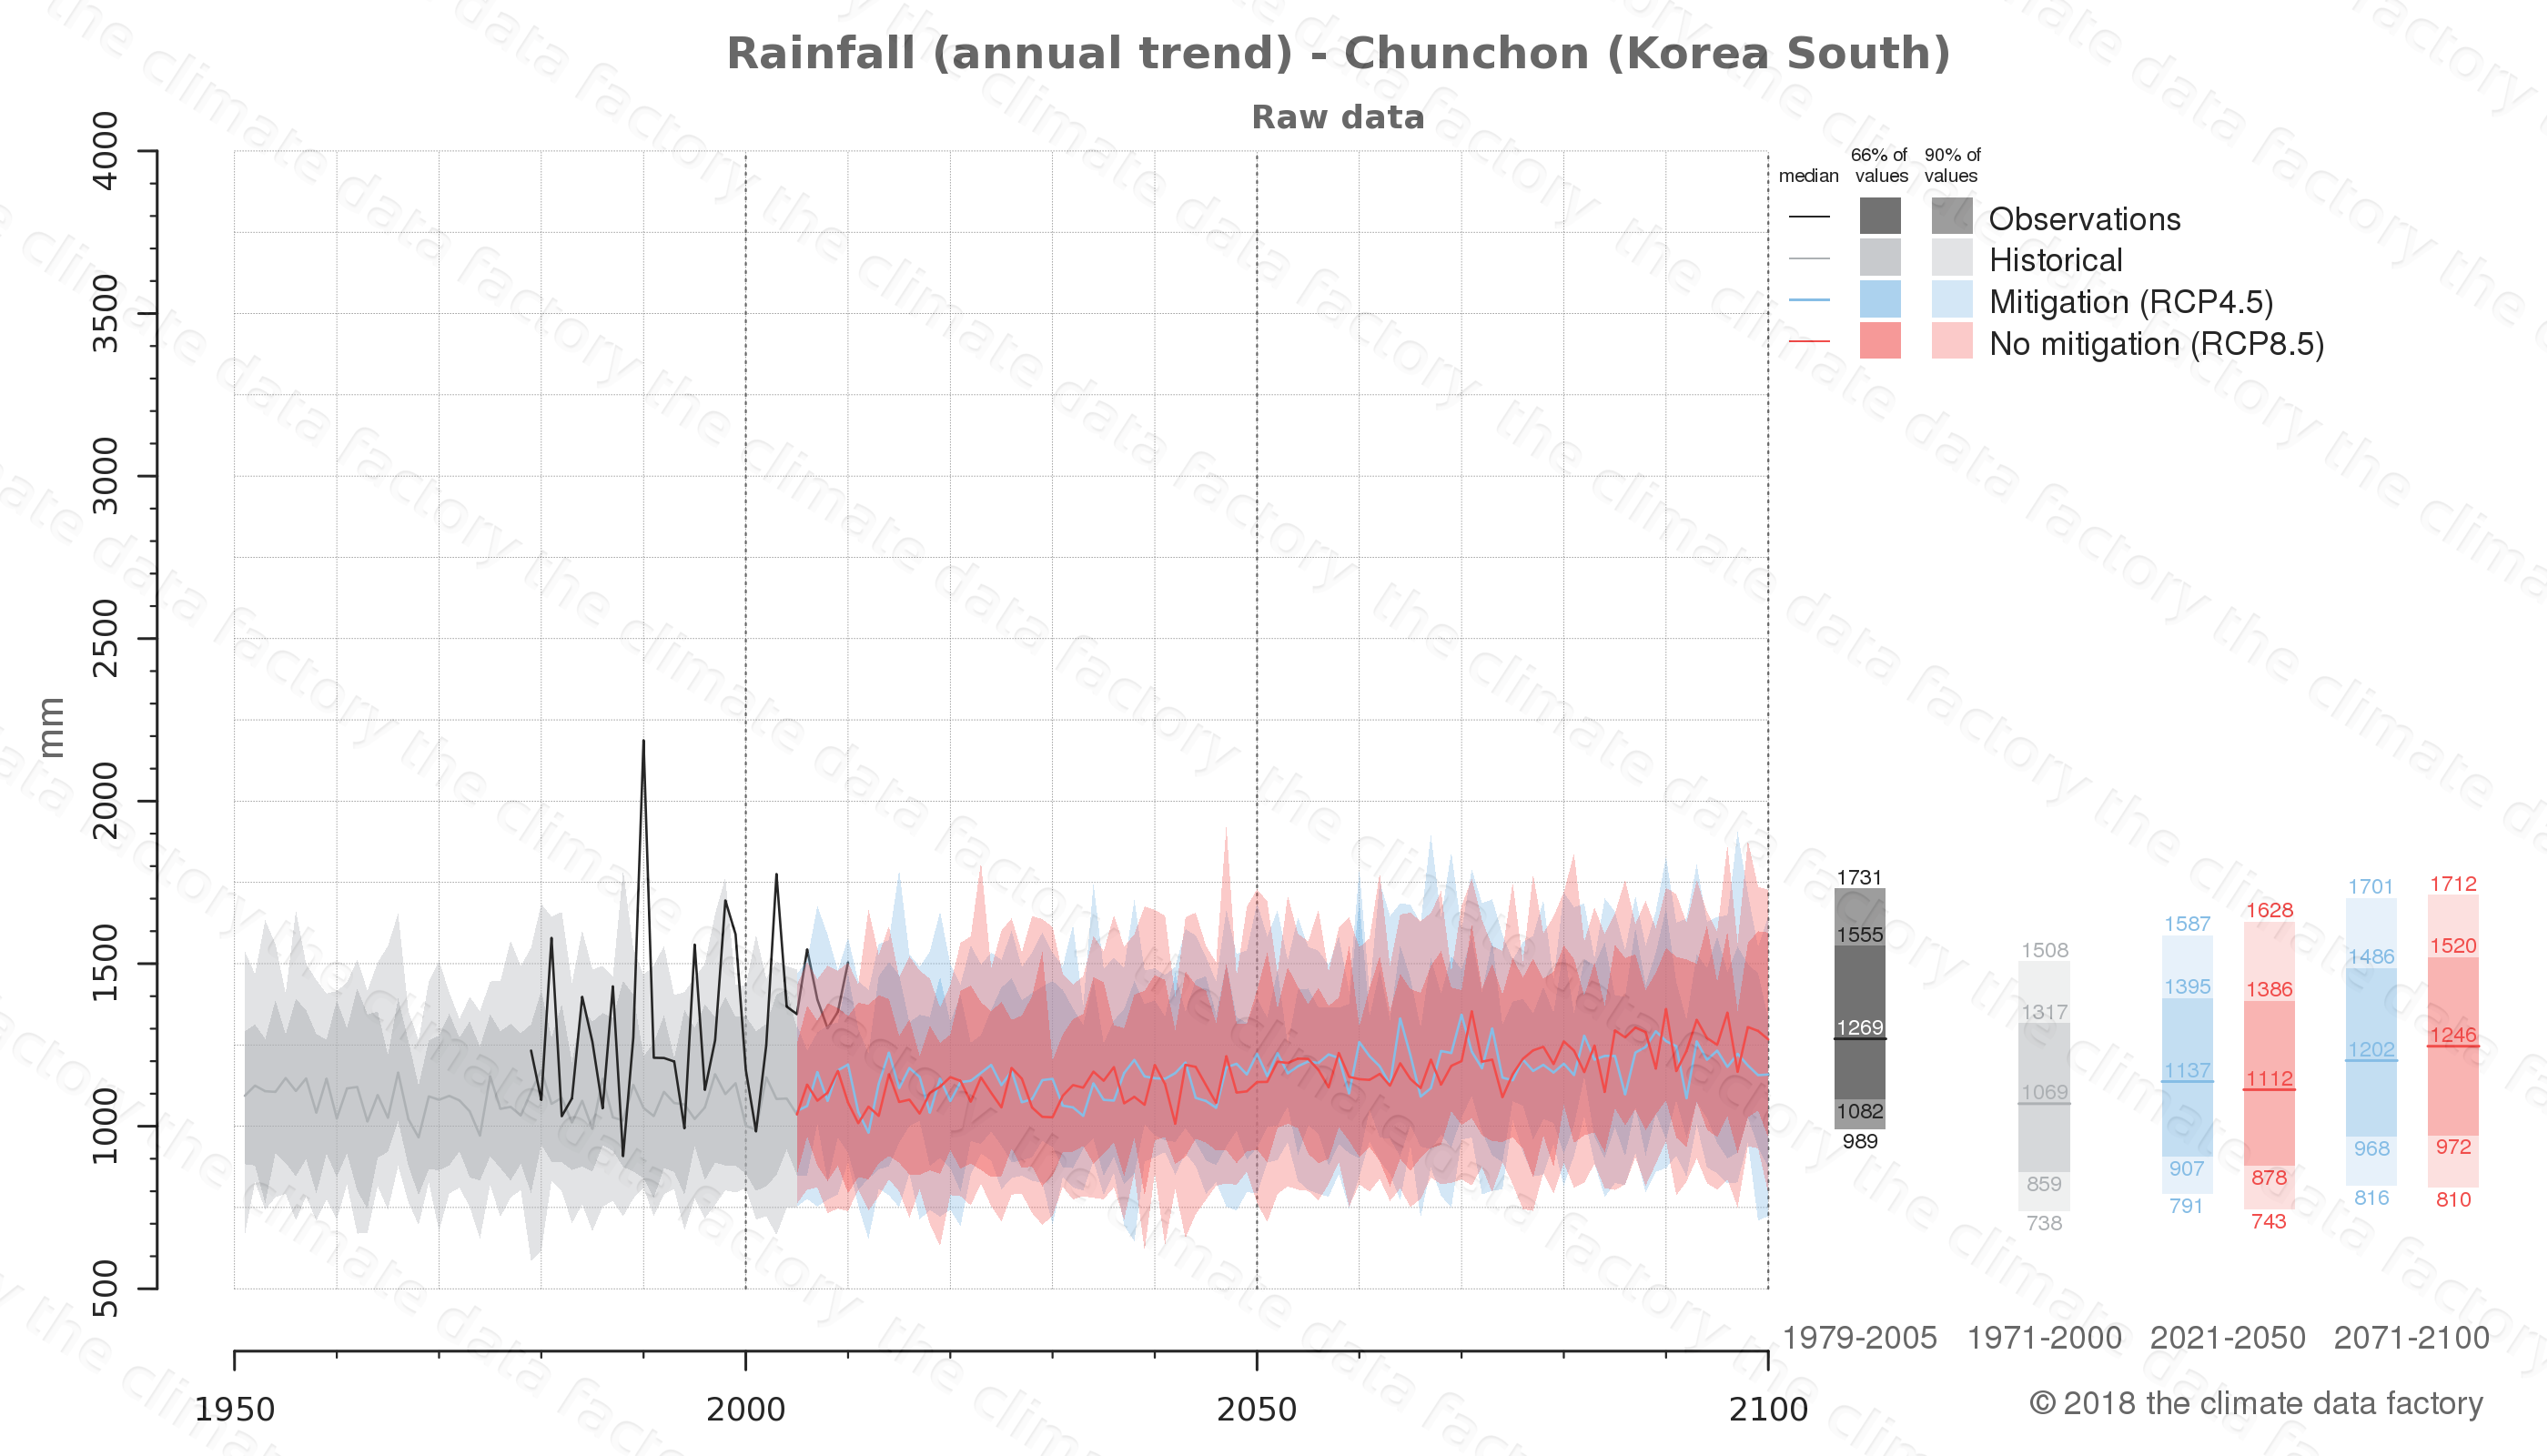 climate change data policy adaptation climate graph city data rainfall chunchon south korea